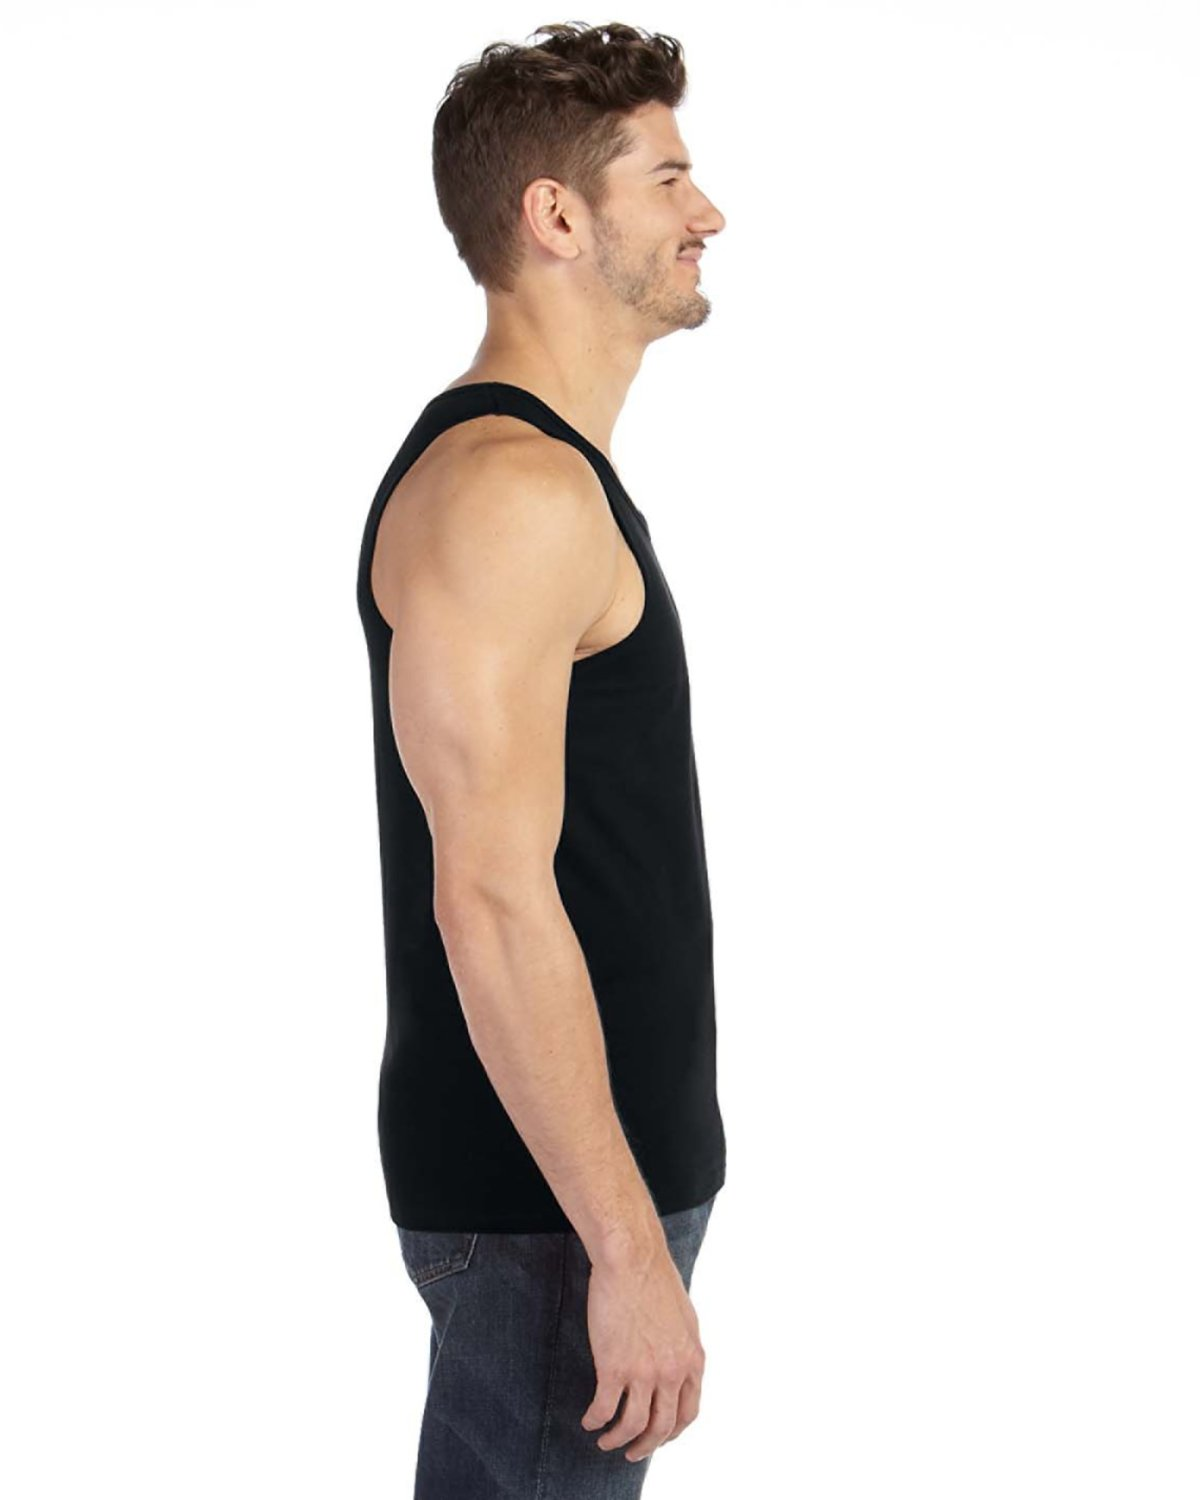 c643aac2cf570 986 Anvil Adult Lightweight Tank. Touch to zoom. Color Shown  black